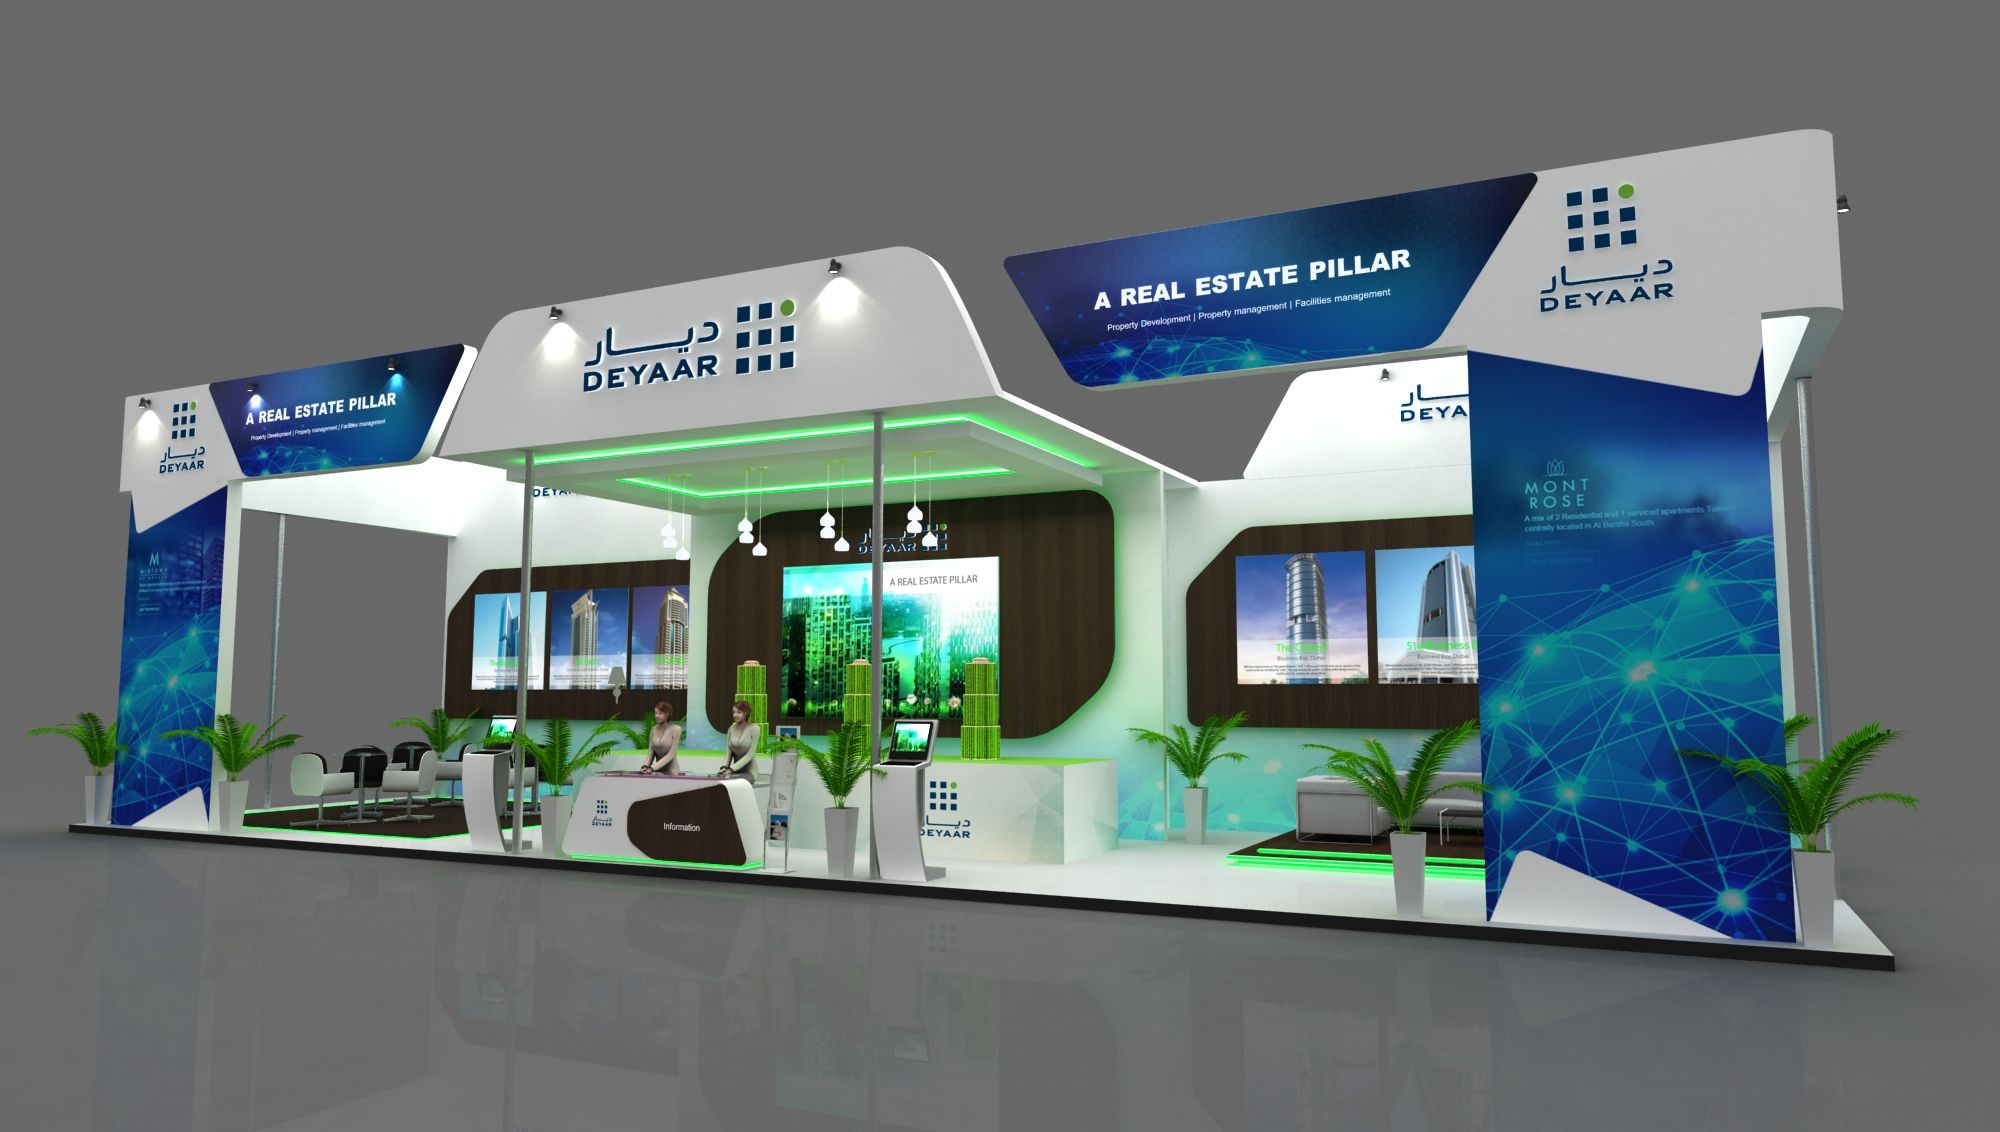 Exhibition Stand Layout Design : Pin by manoj sharma on exhibition exhibition stand design